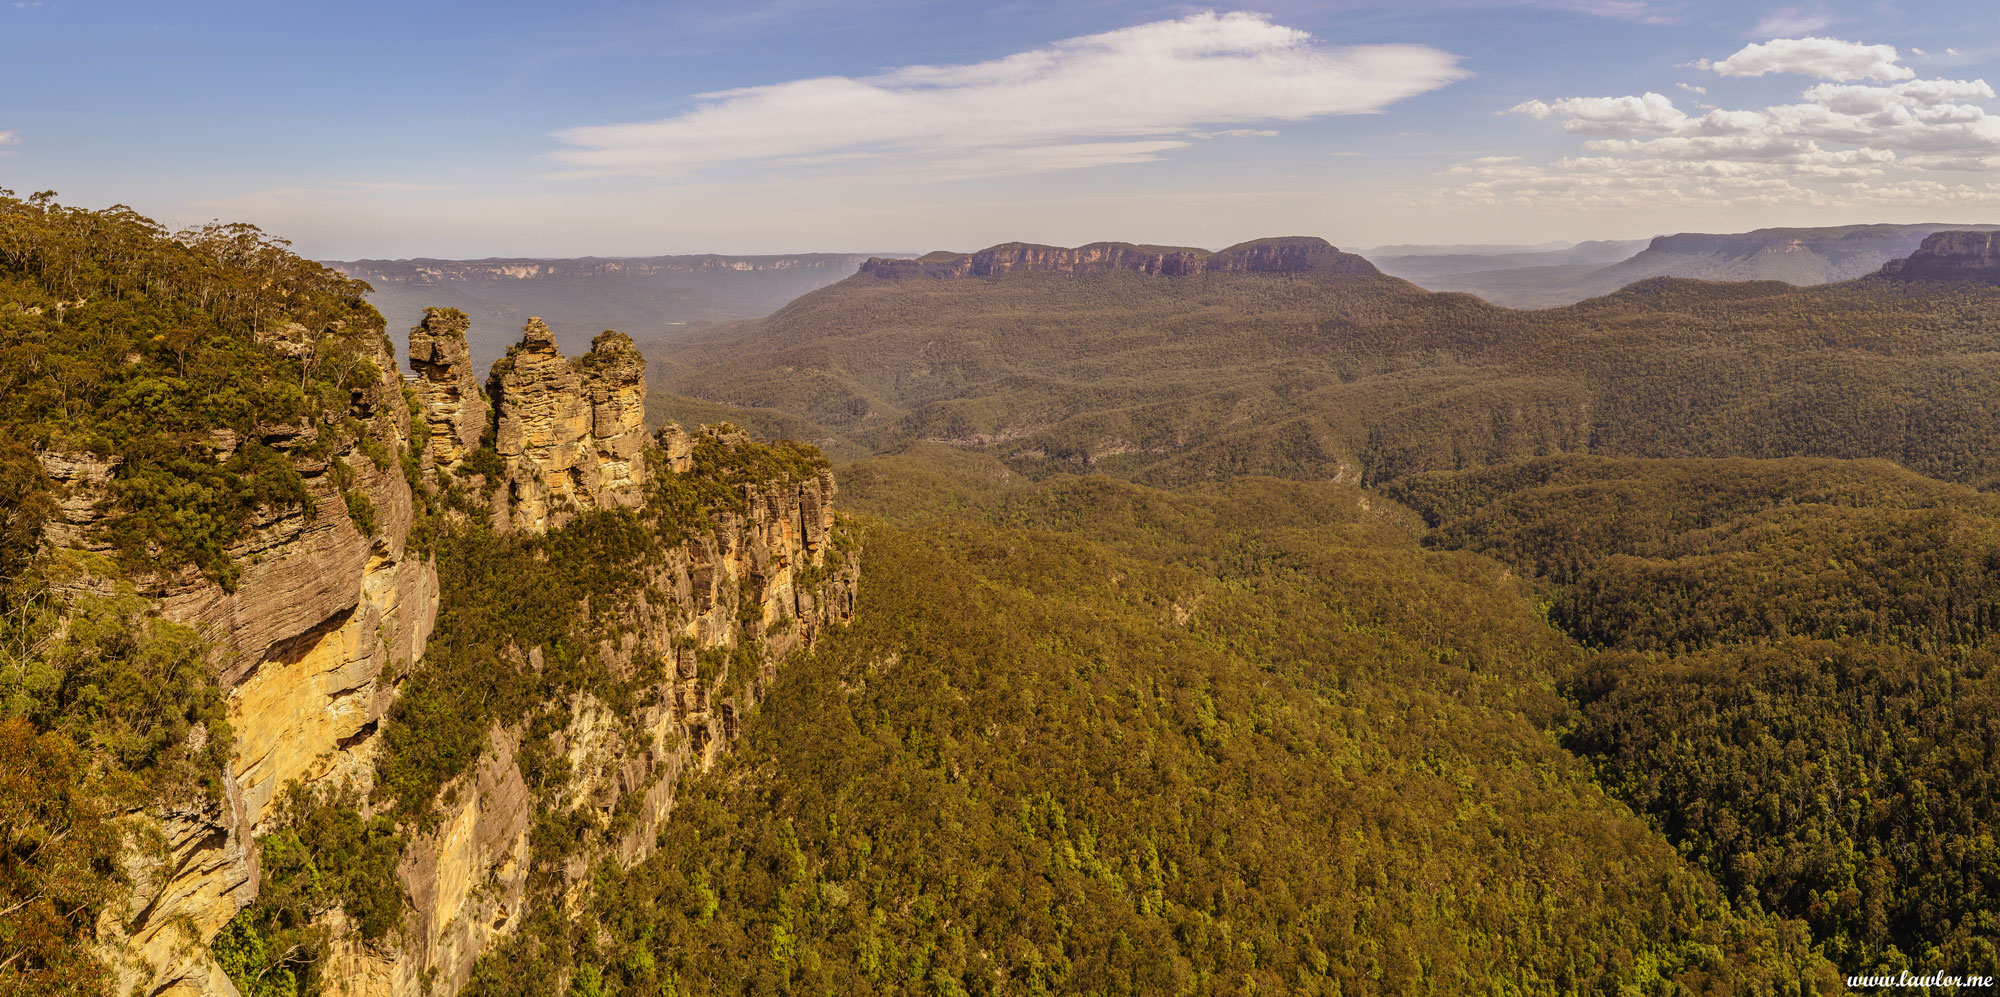 The Three Sisters, Blue Mountains, NSW - Australia, Free Landscape Photography, free landscape photos, free nature images, free HD images, free high definition stock images, free stock images download, desktop background, desktop wallpapers, free screensaver, landscape photography